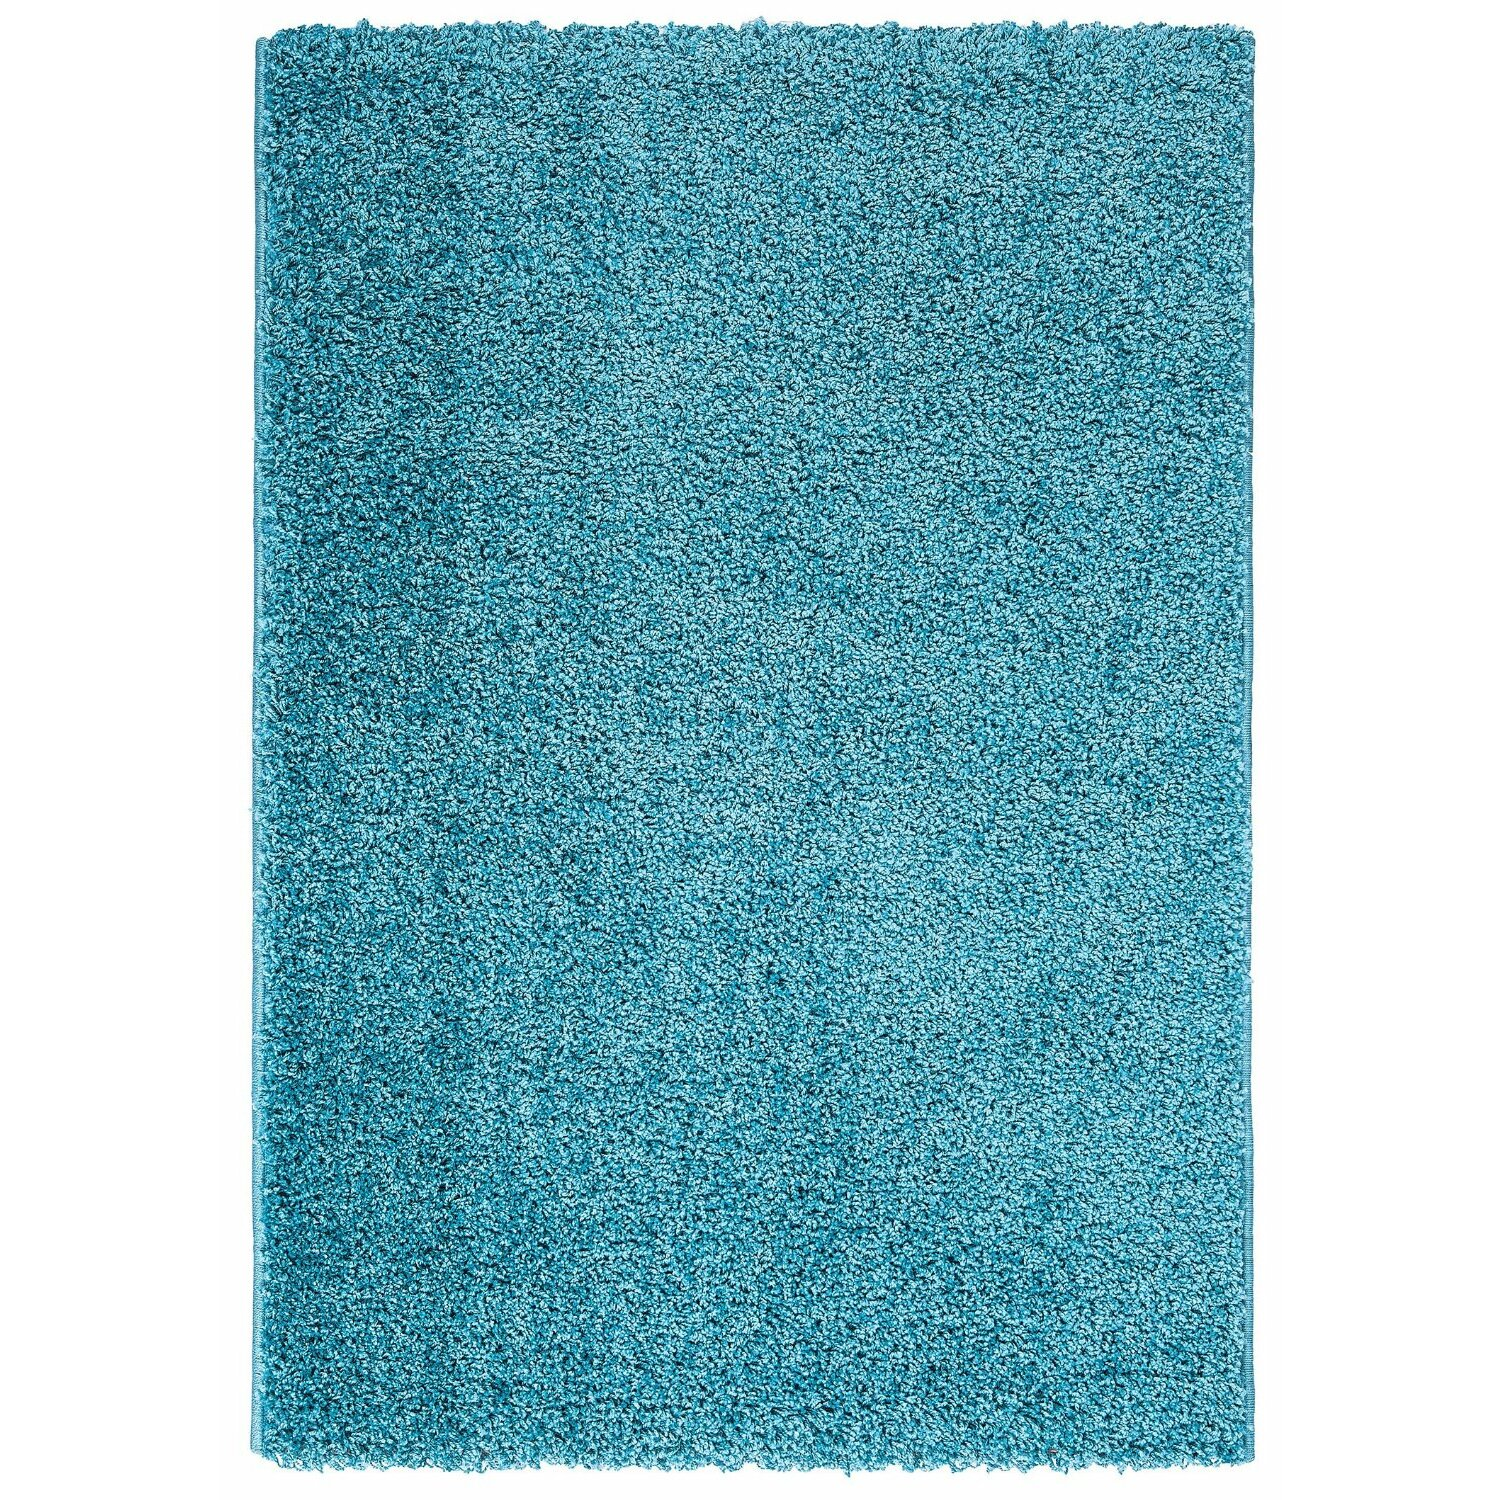 Ottomanson Turquoise Blue Shaggy Area Rug Amp Reviews Wayfair